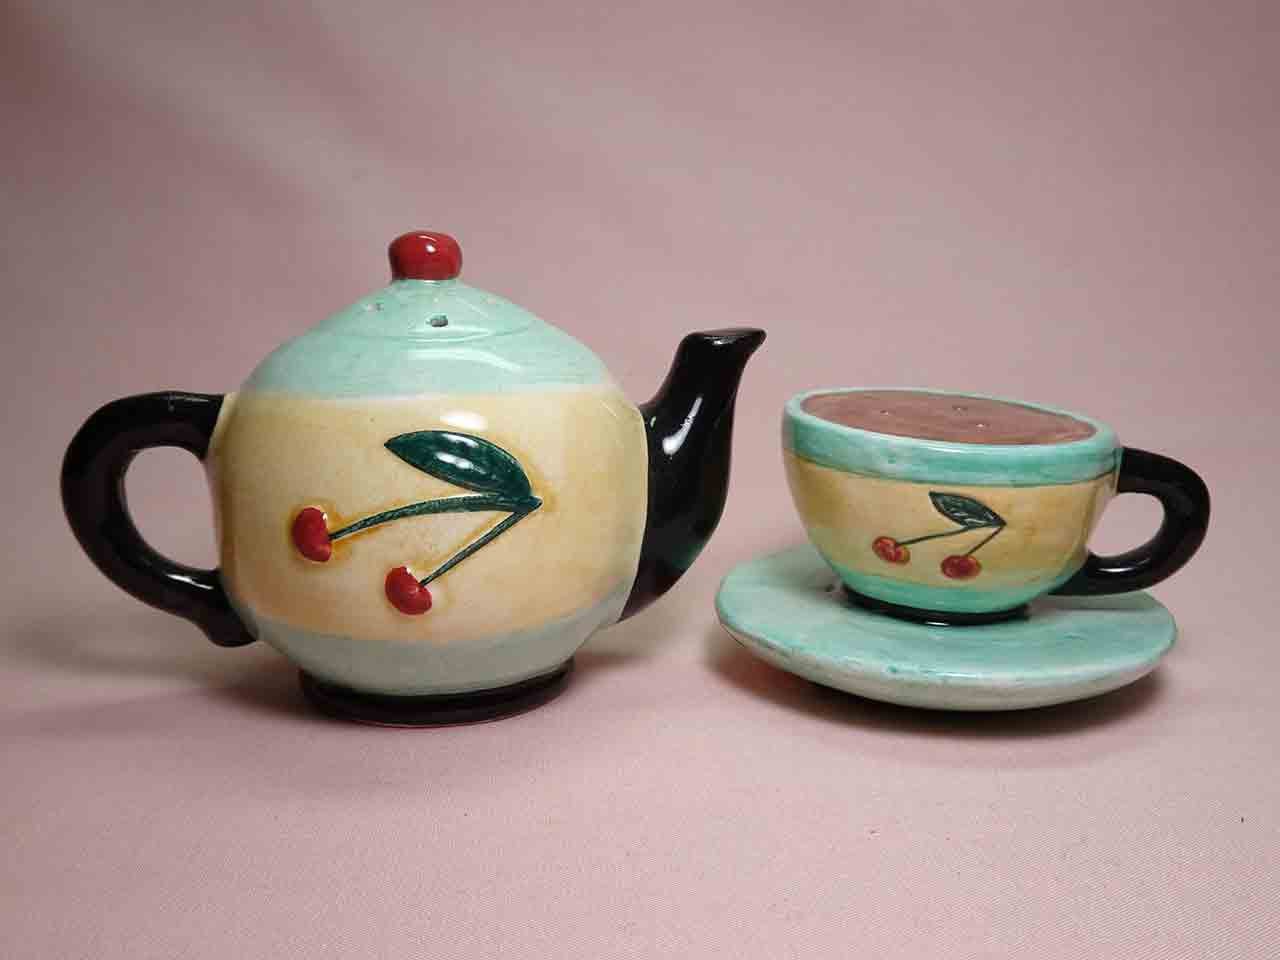 Vandor household items salt and pepper shakers - teapot & cup